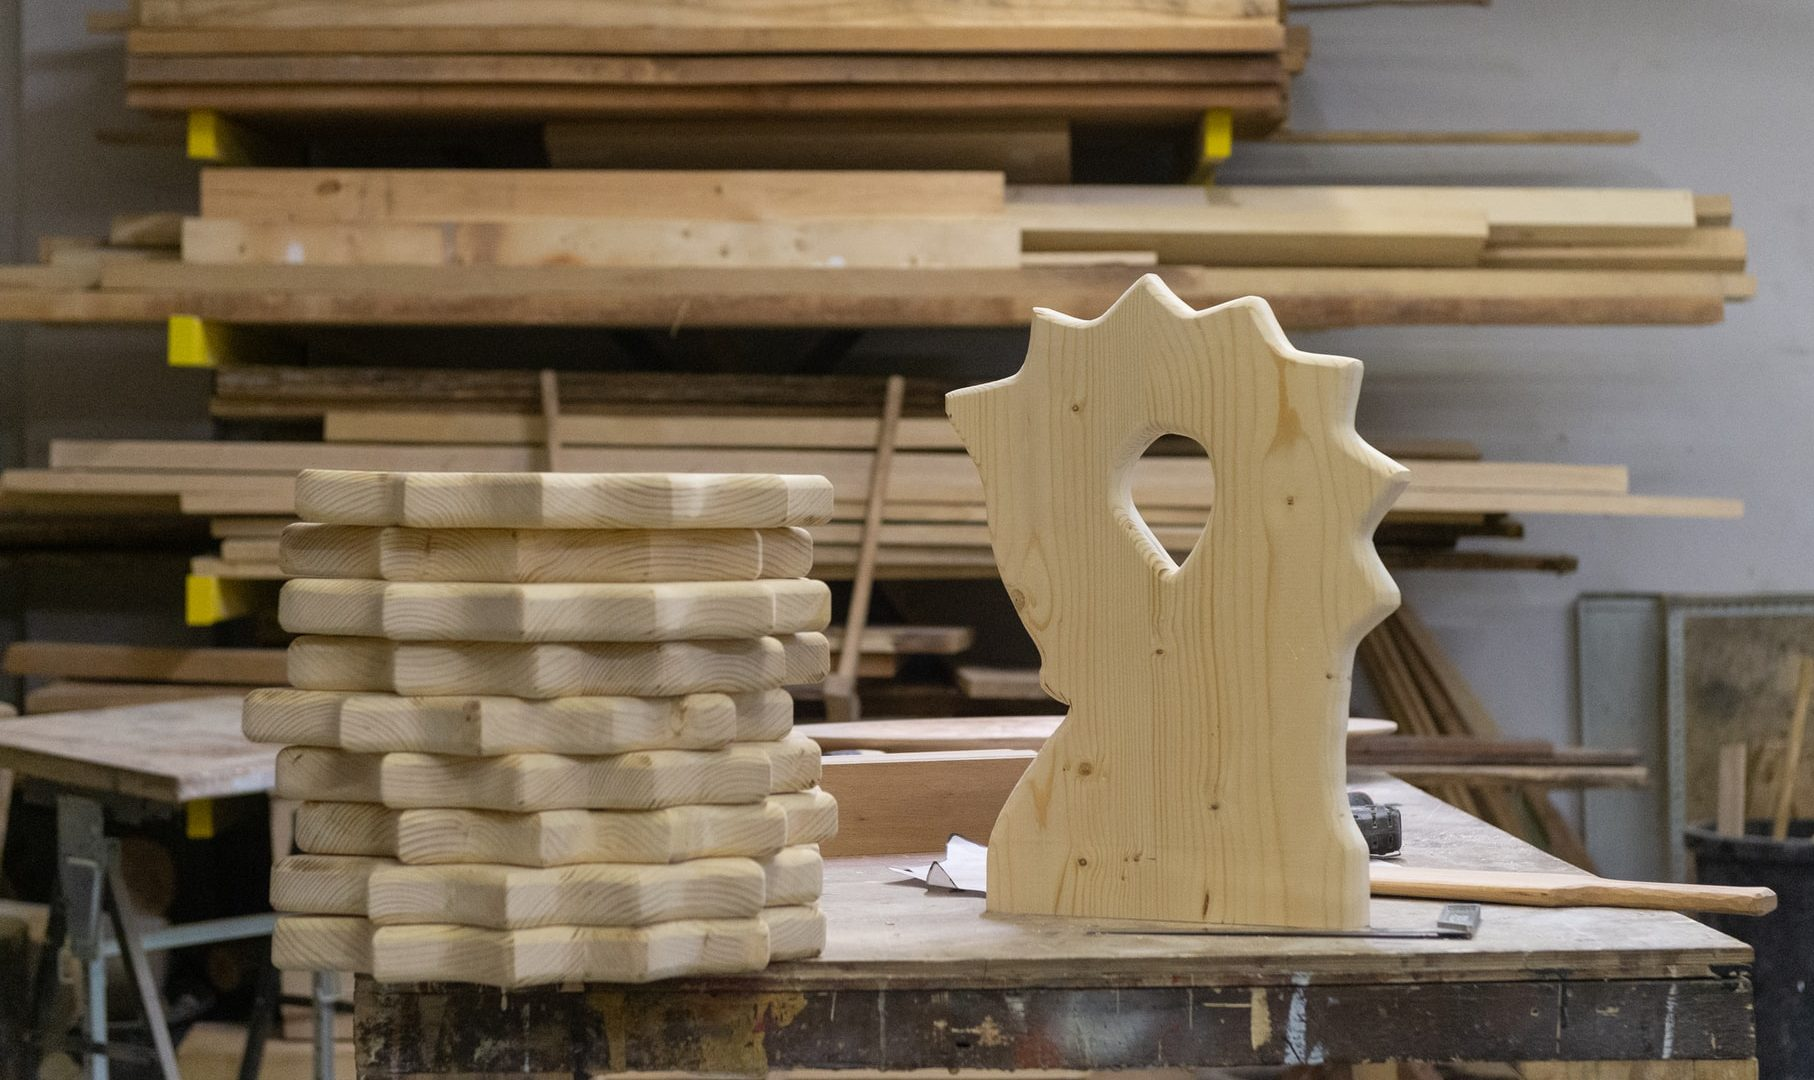 Sustainable design step 4, pile of carved wooden slabs next to an upright wooden slab